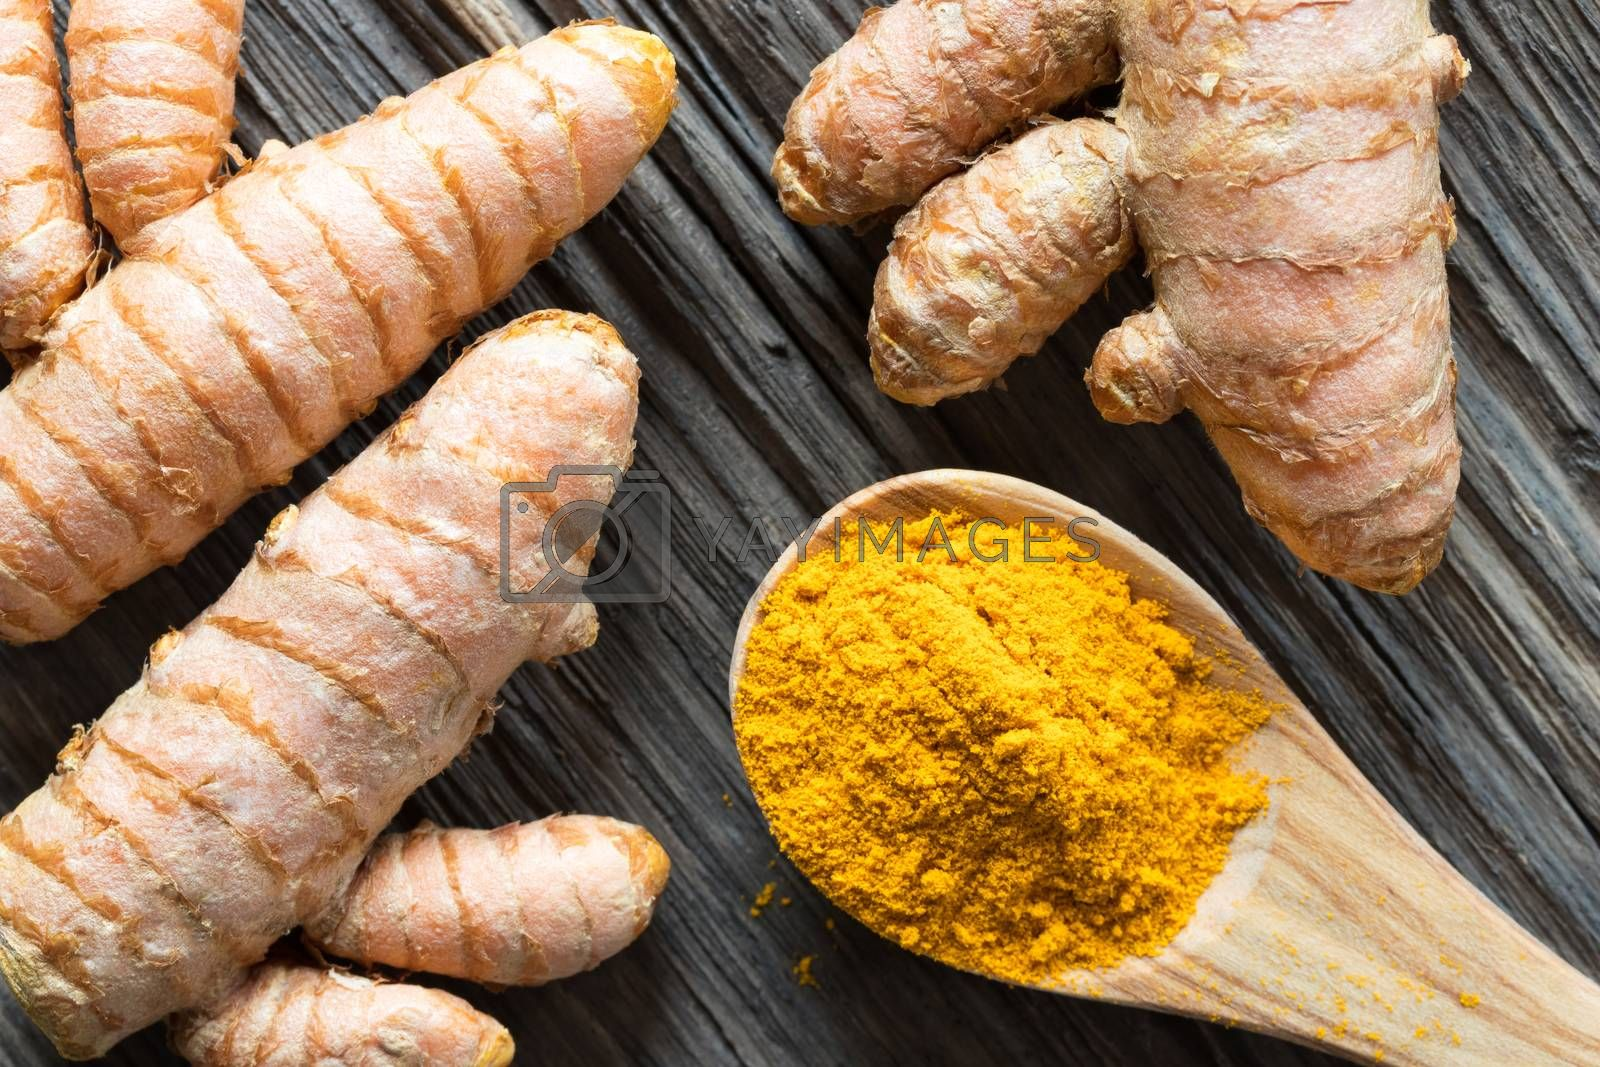 Turmeric powder and fresh turmeric root on a wooden background